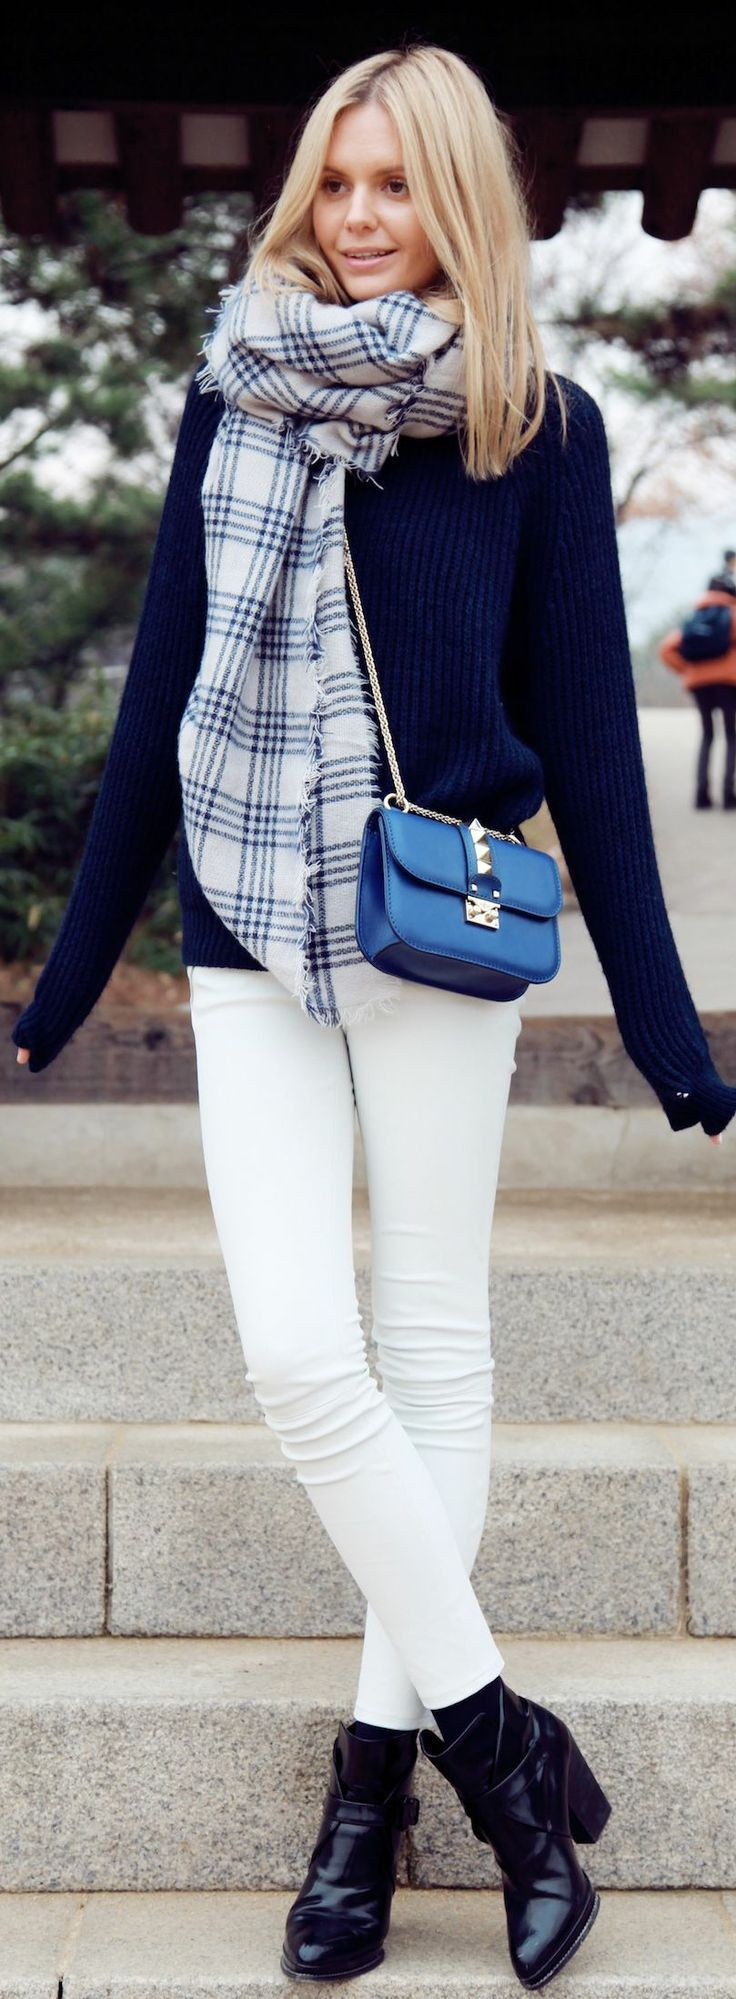 17 Best ideas about White Jeans Winter on Pinterest | Grey boots ...